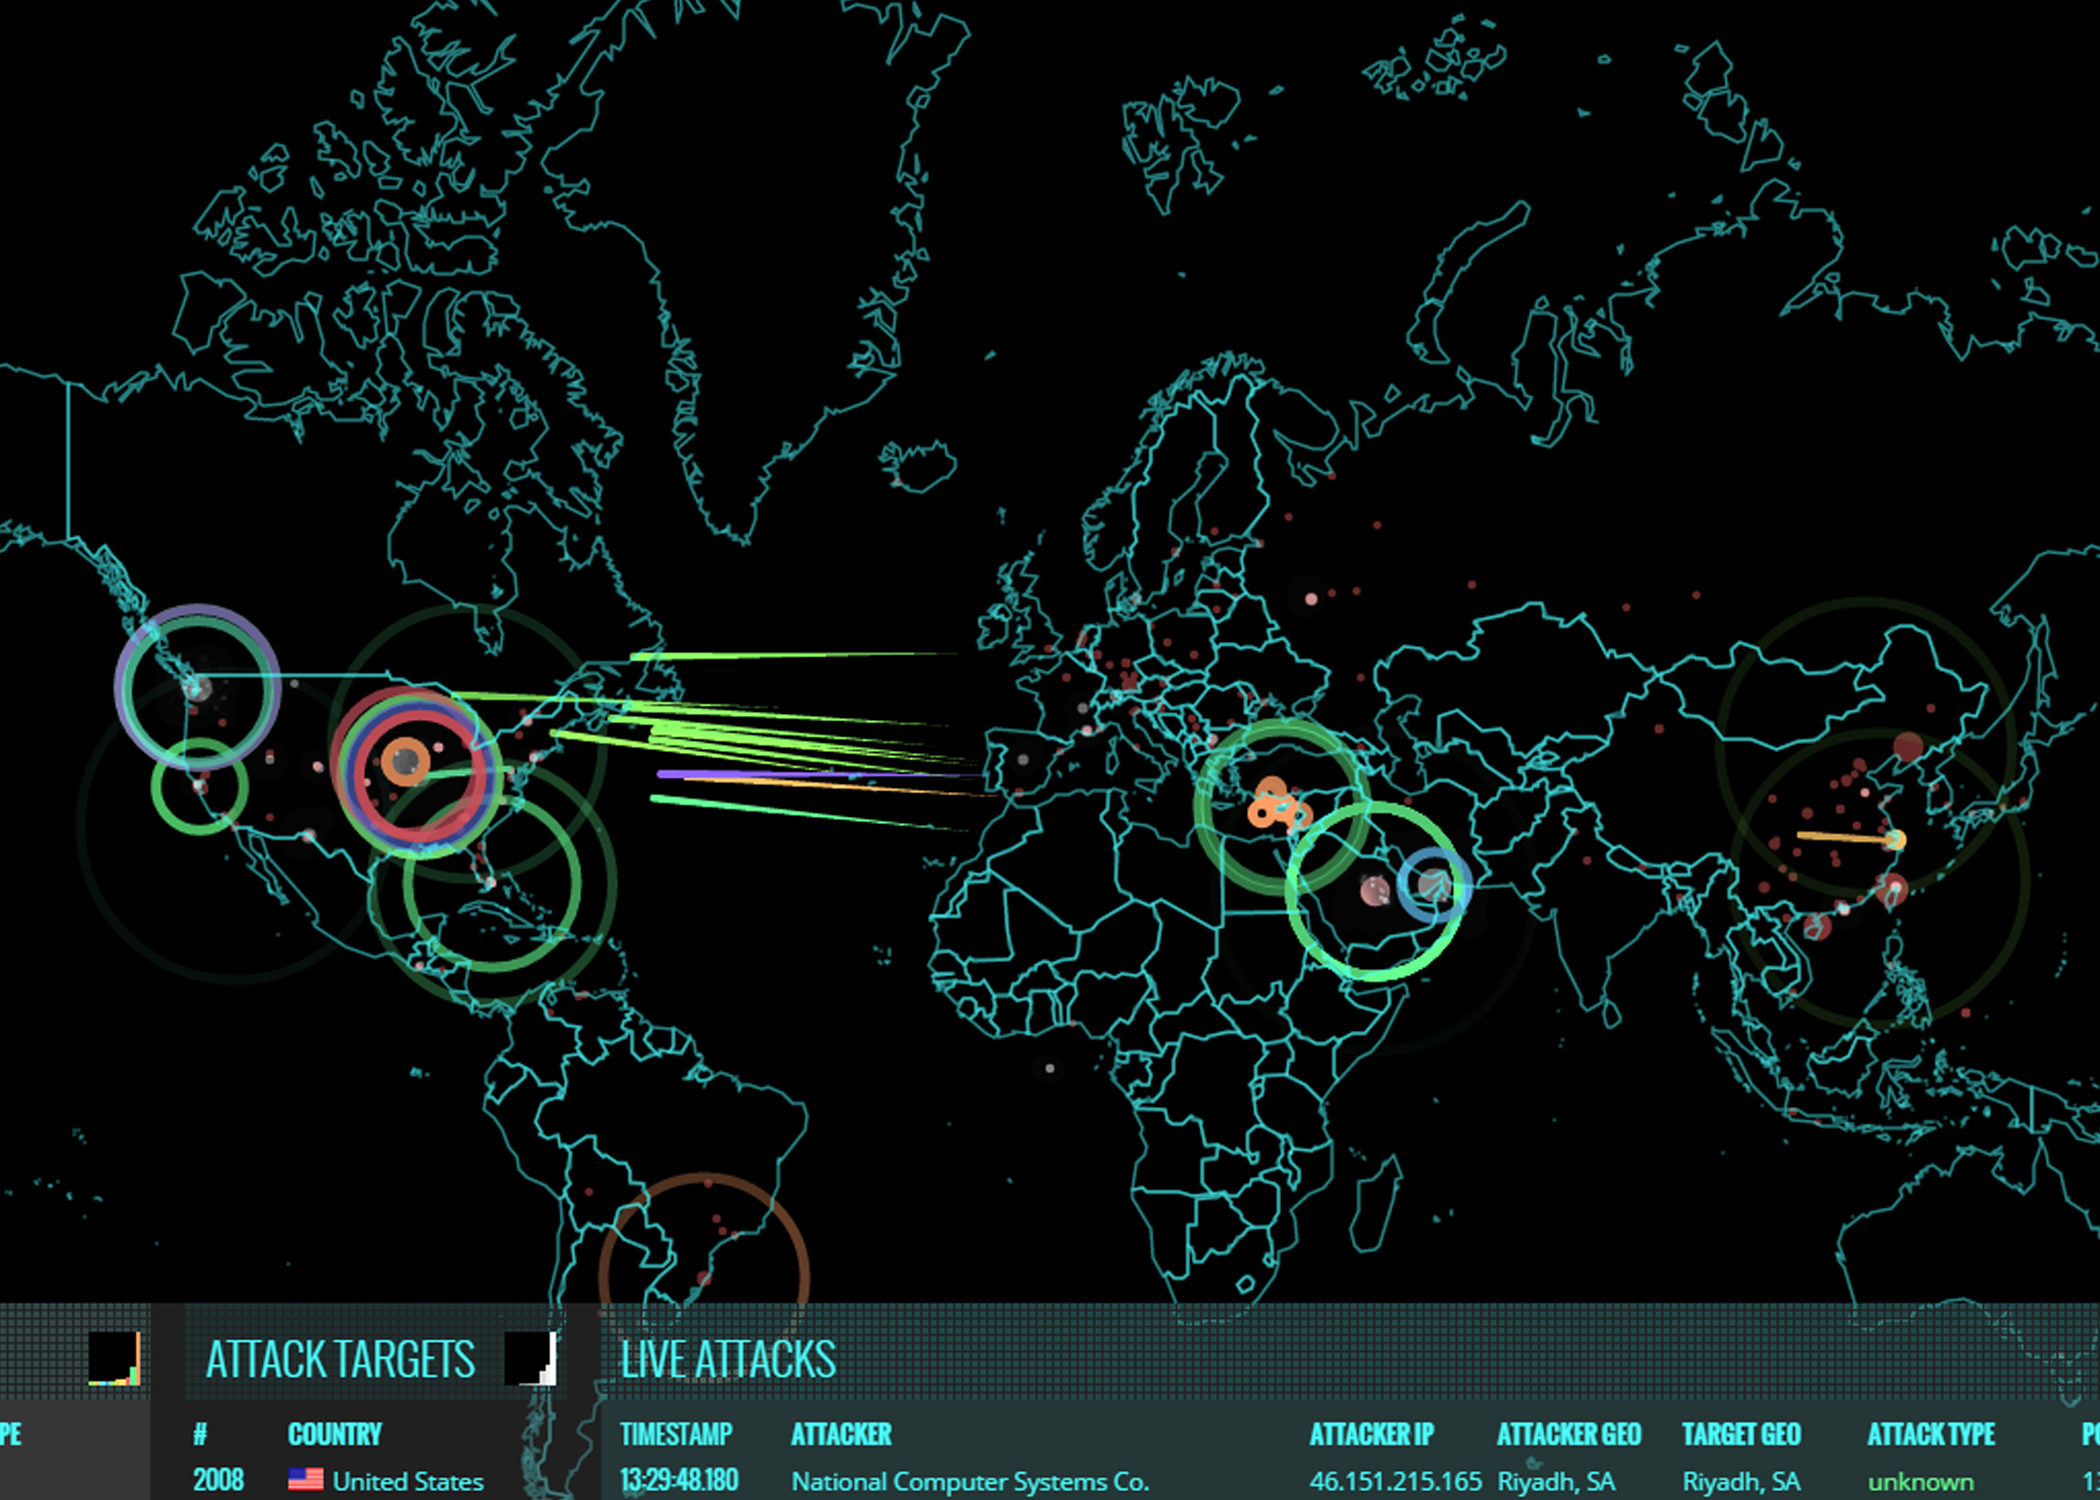 A screenshot taken on Oct. 28 at 1:30 p.m. of cyberattacks around the world from Norse (map.norsecorp.com)